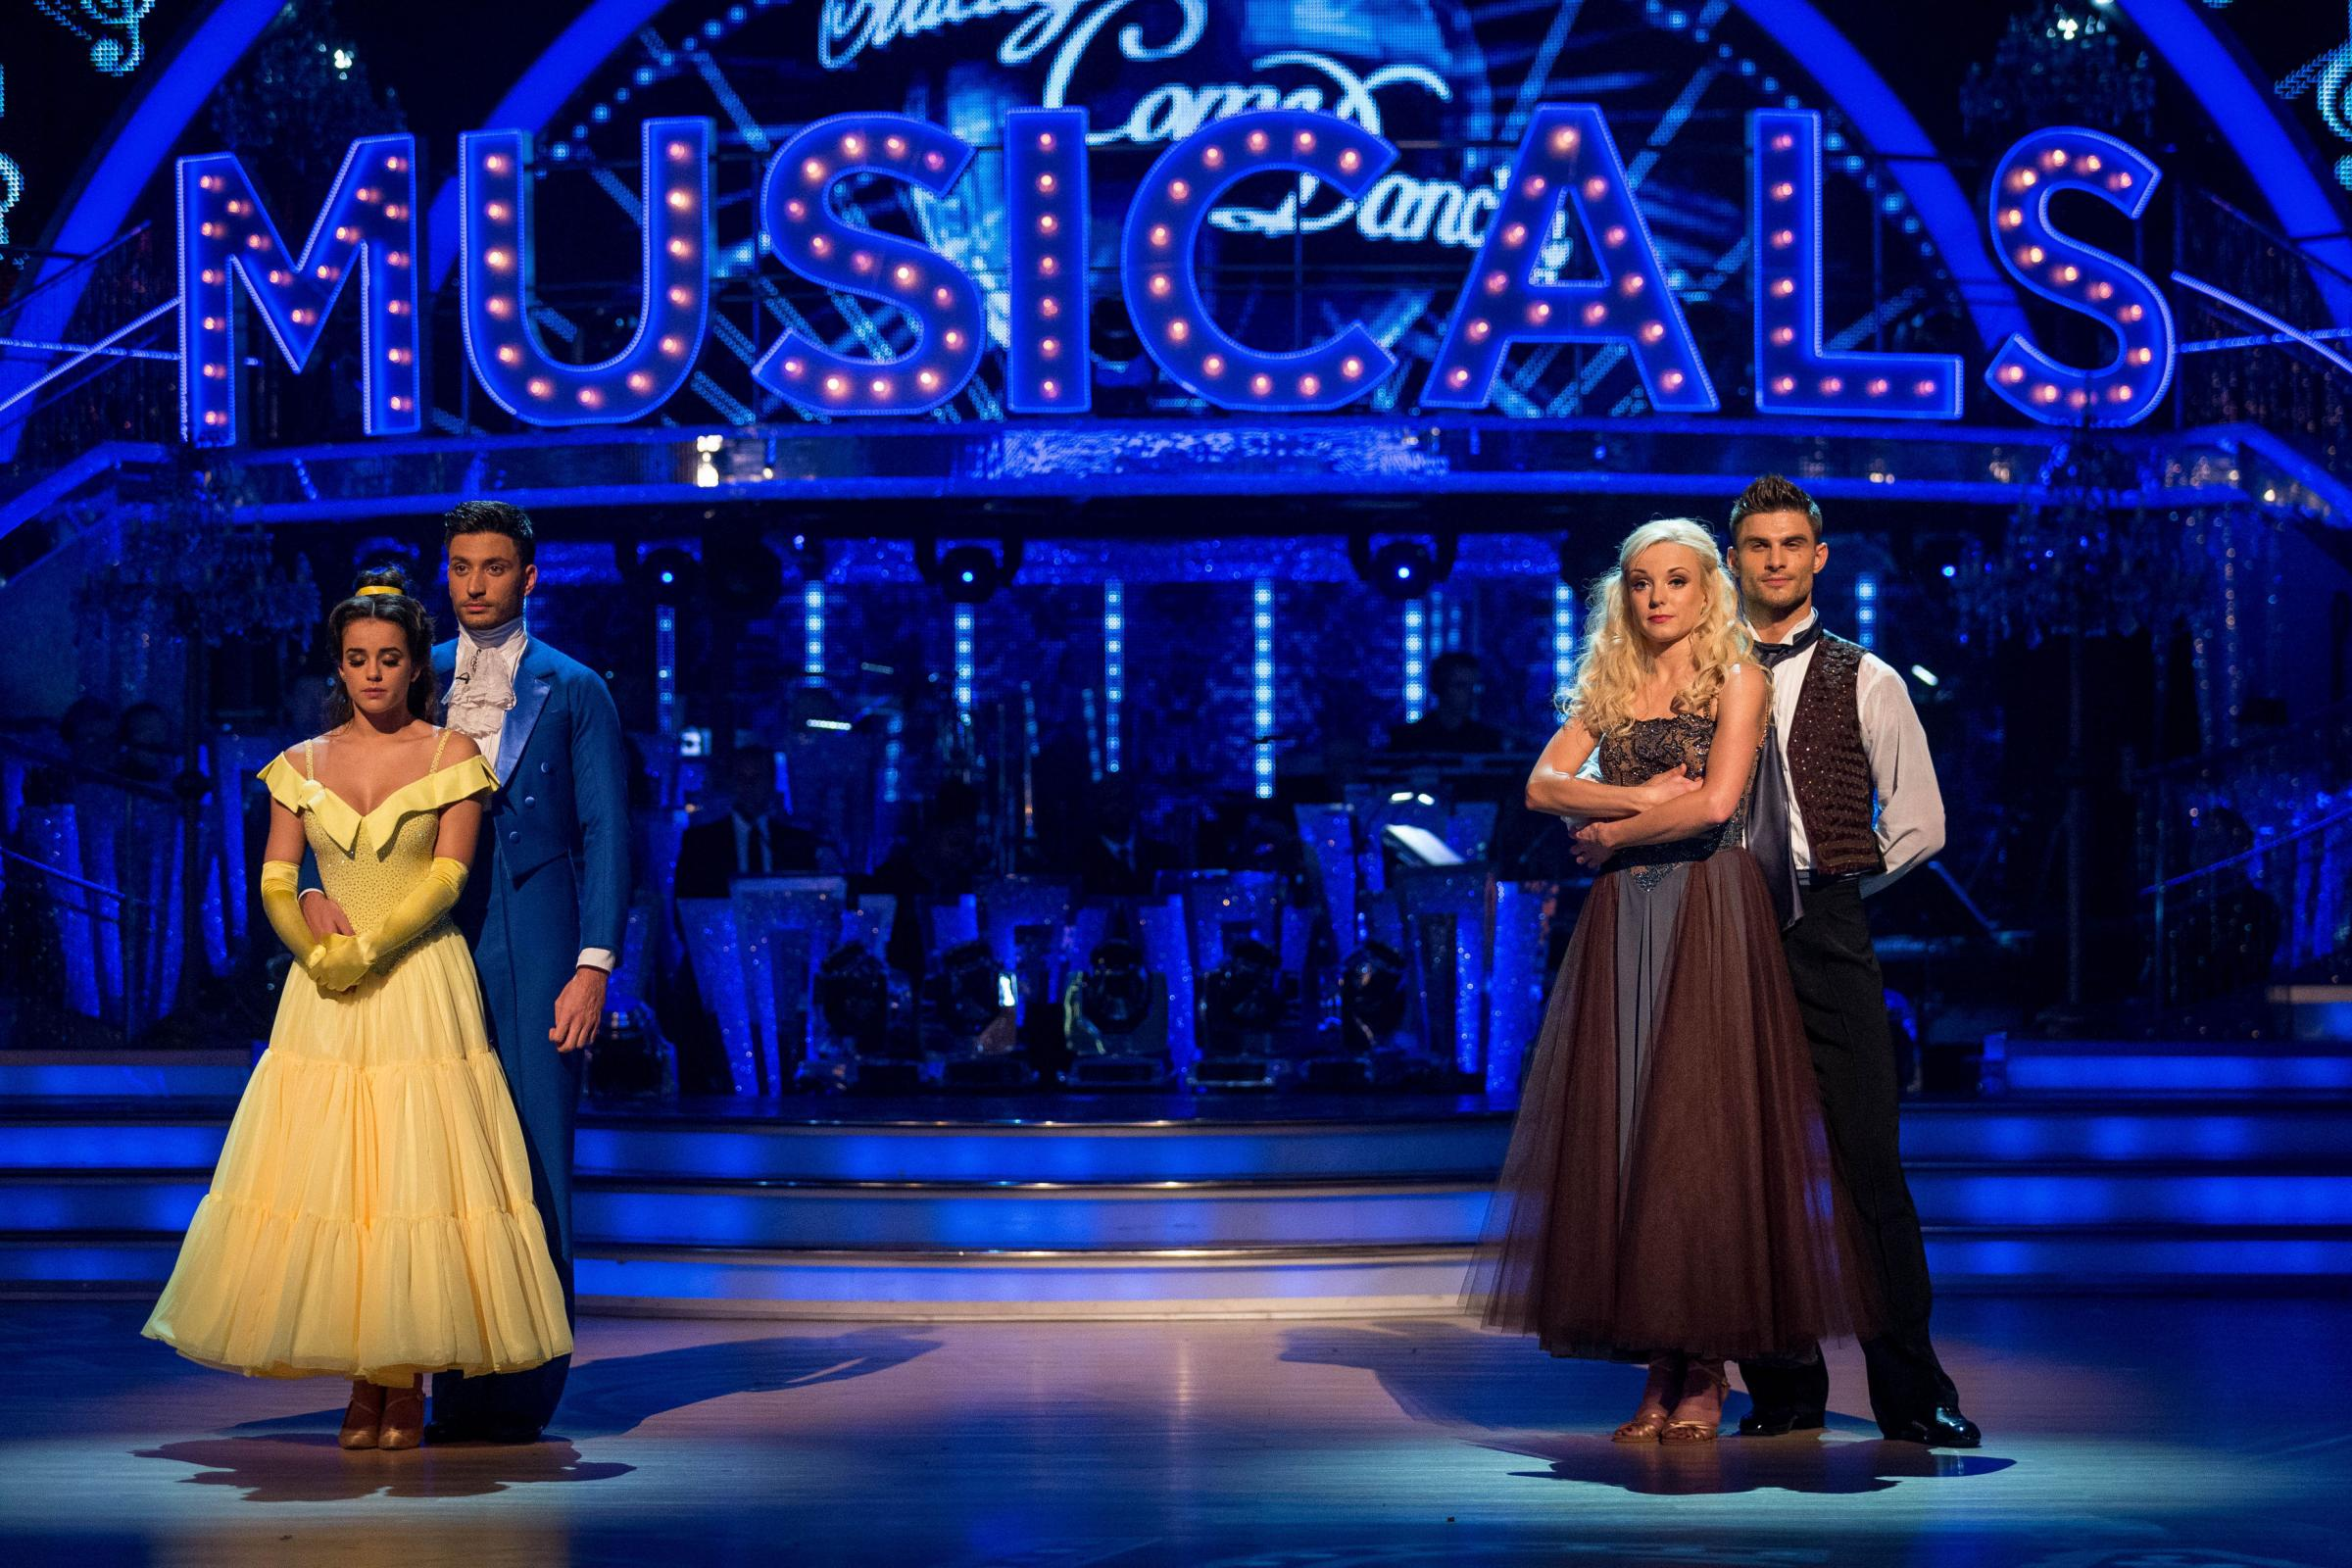 Strictly Come Dancing 2015: Helen George leaves competition after shock dance